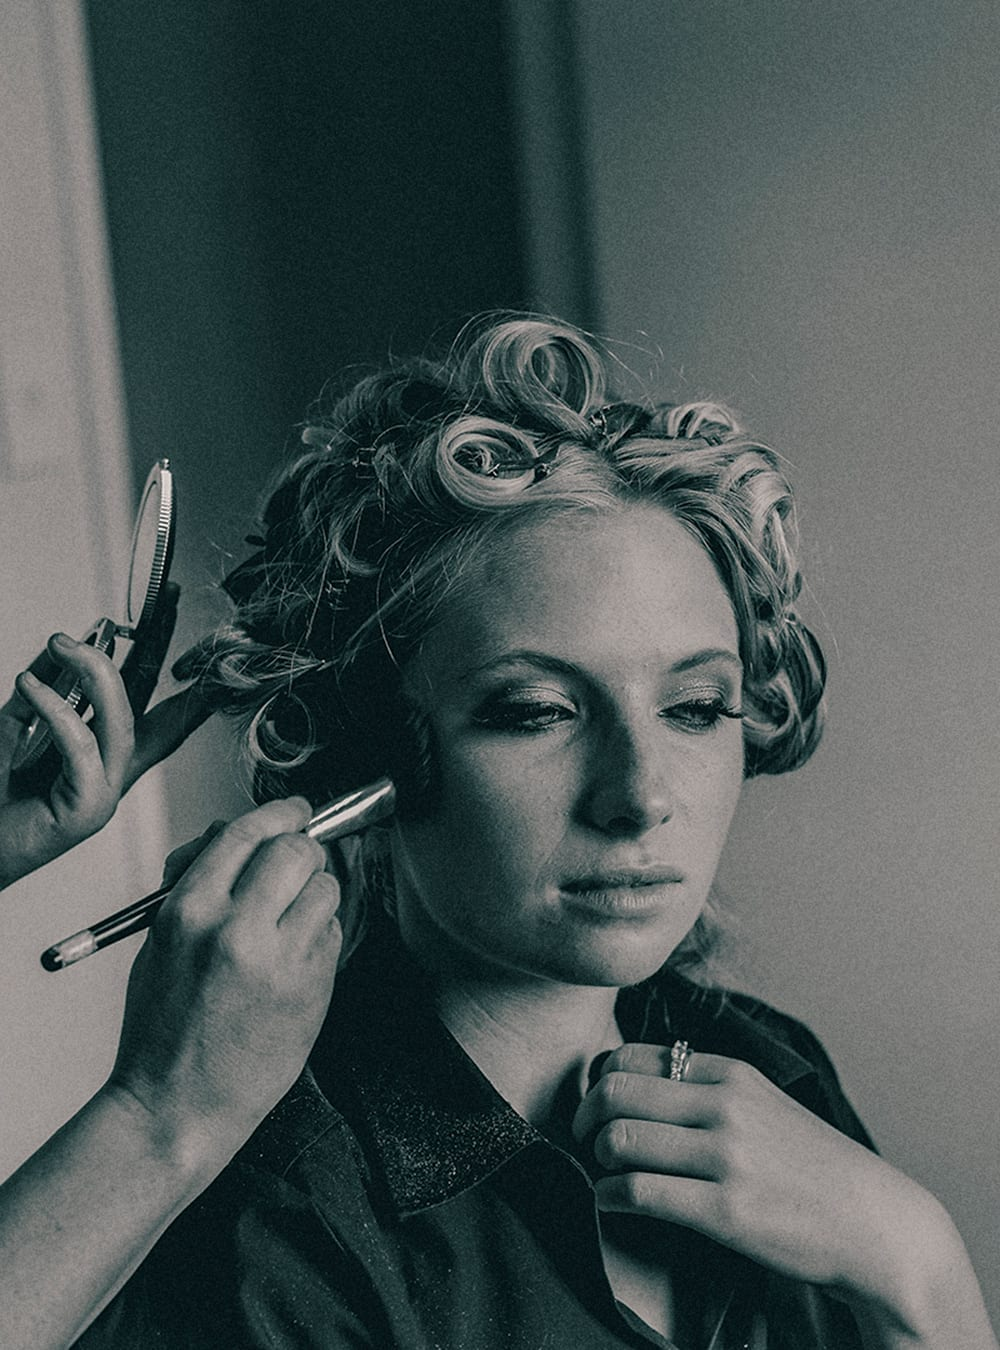 A black and white photograph of a woman having make up applied to her cheek